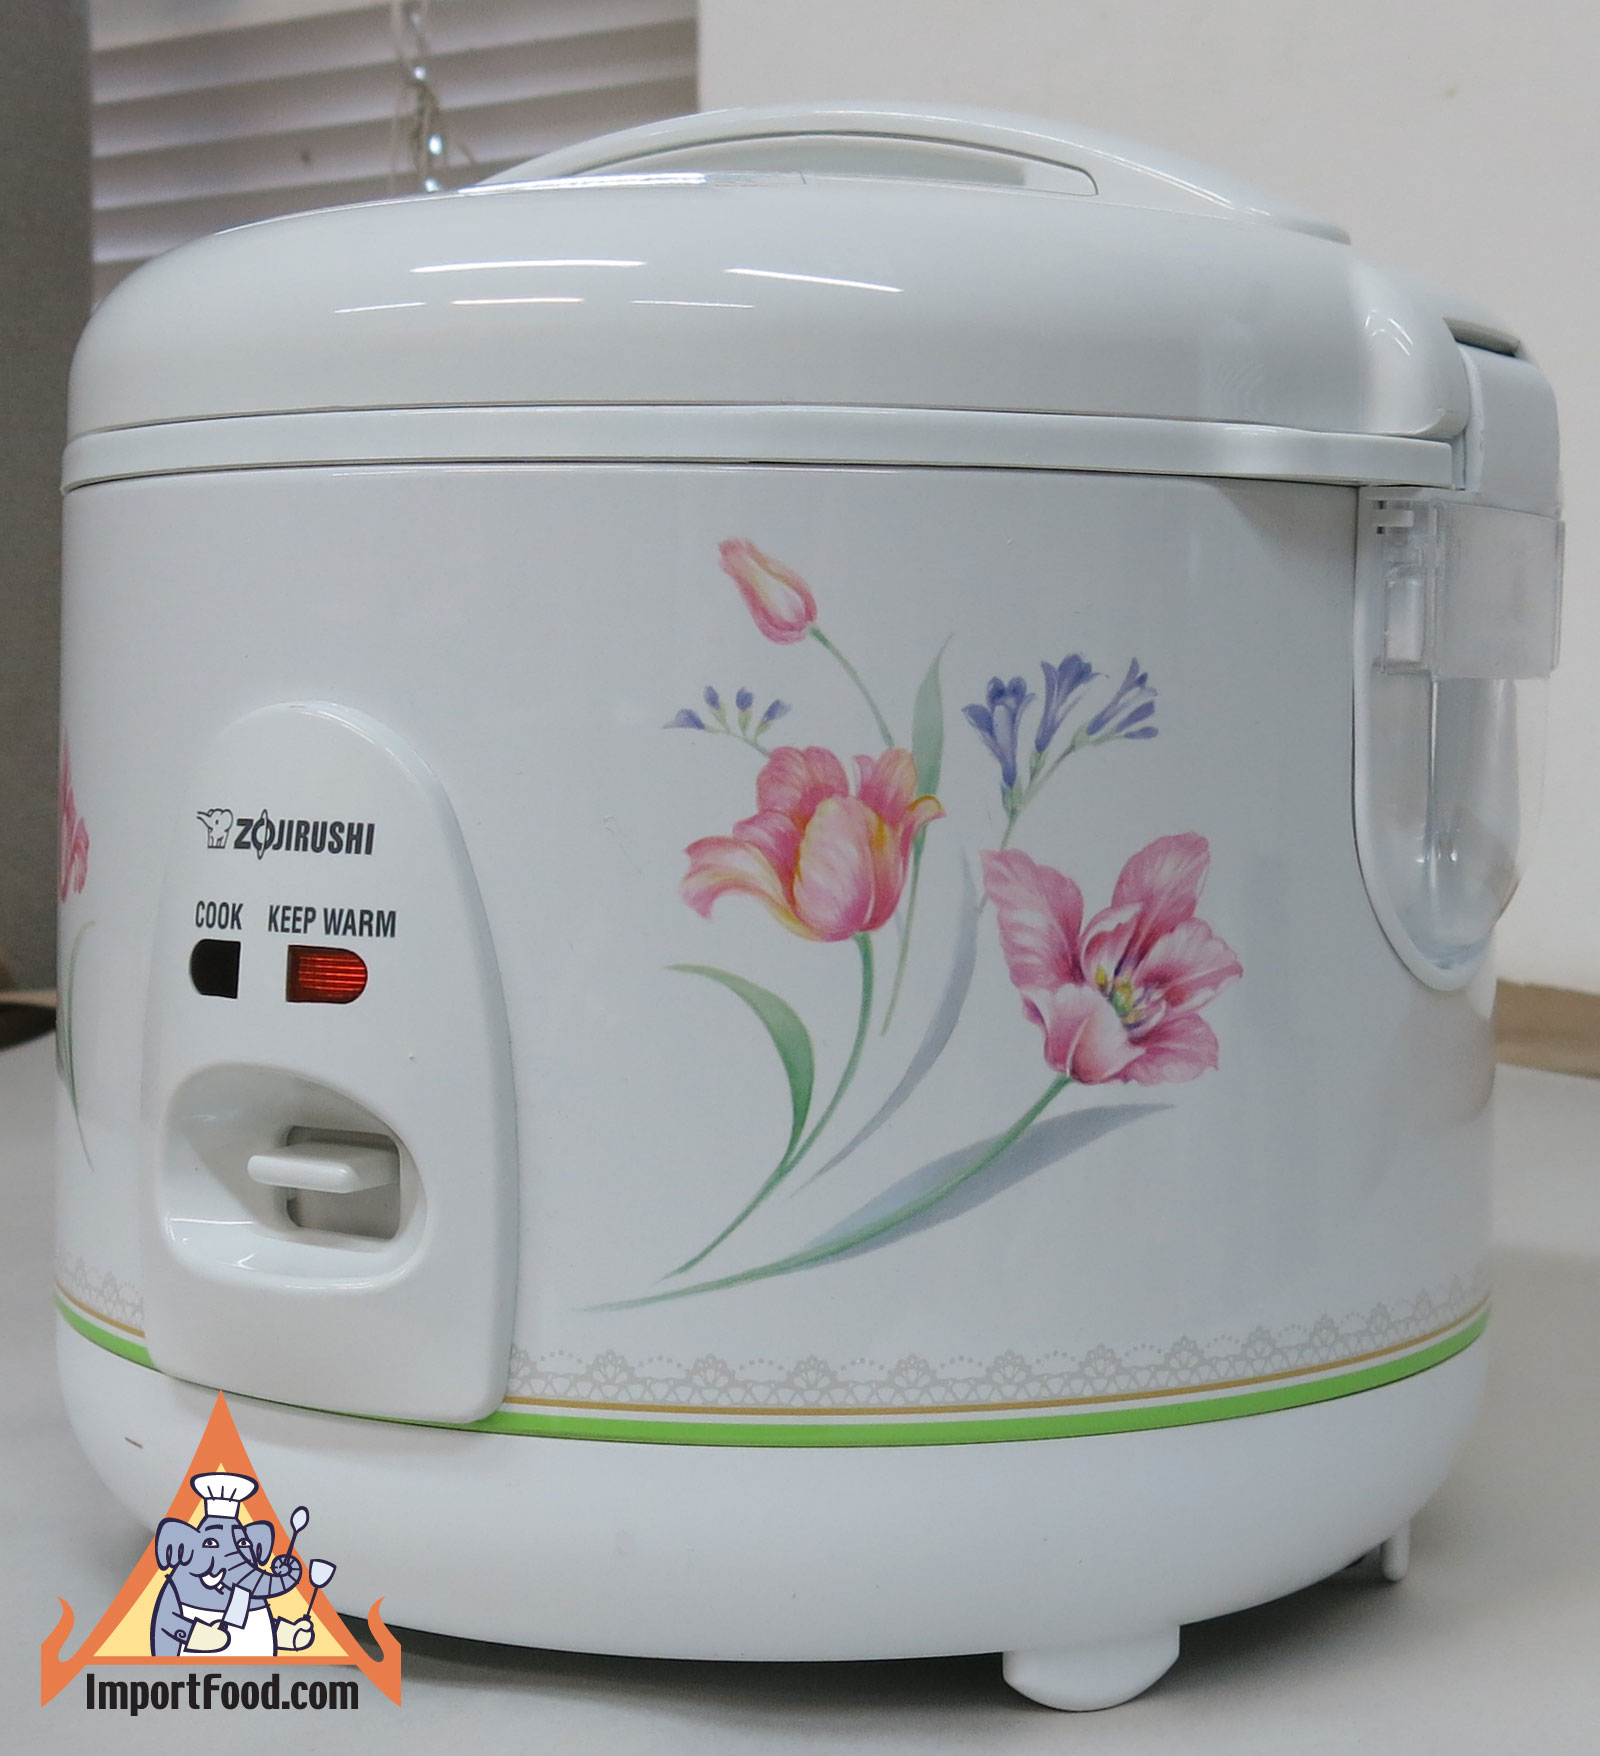 Rice Cooker, Made In Thailand By Zojirushi, Available